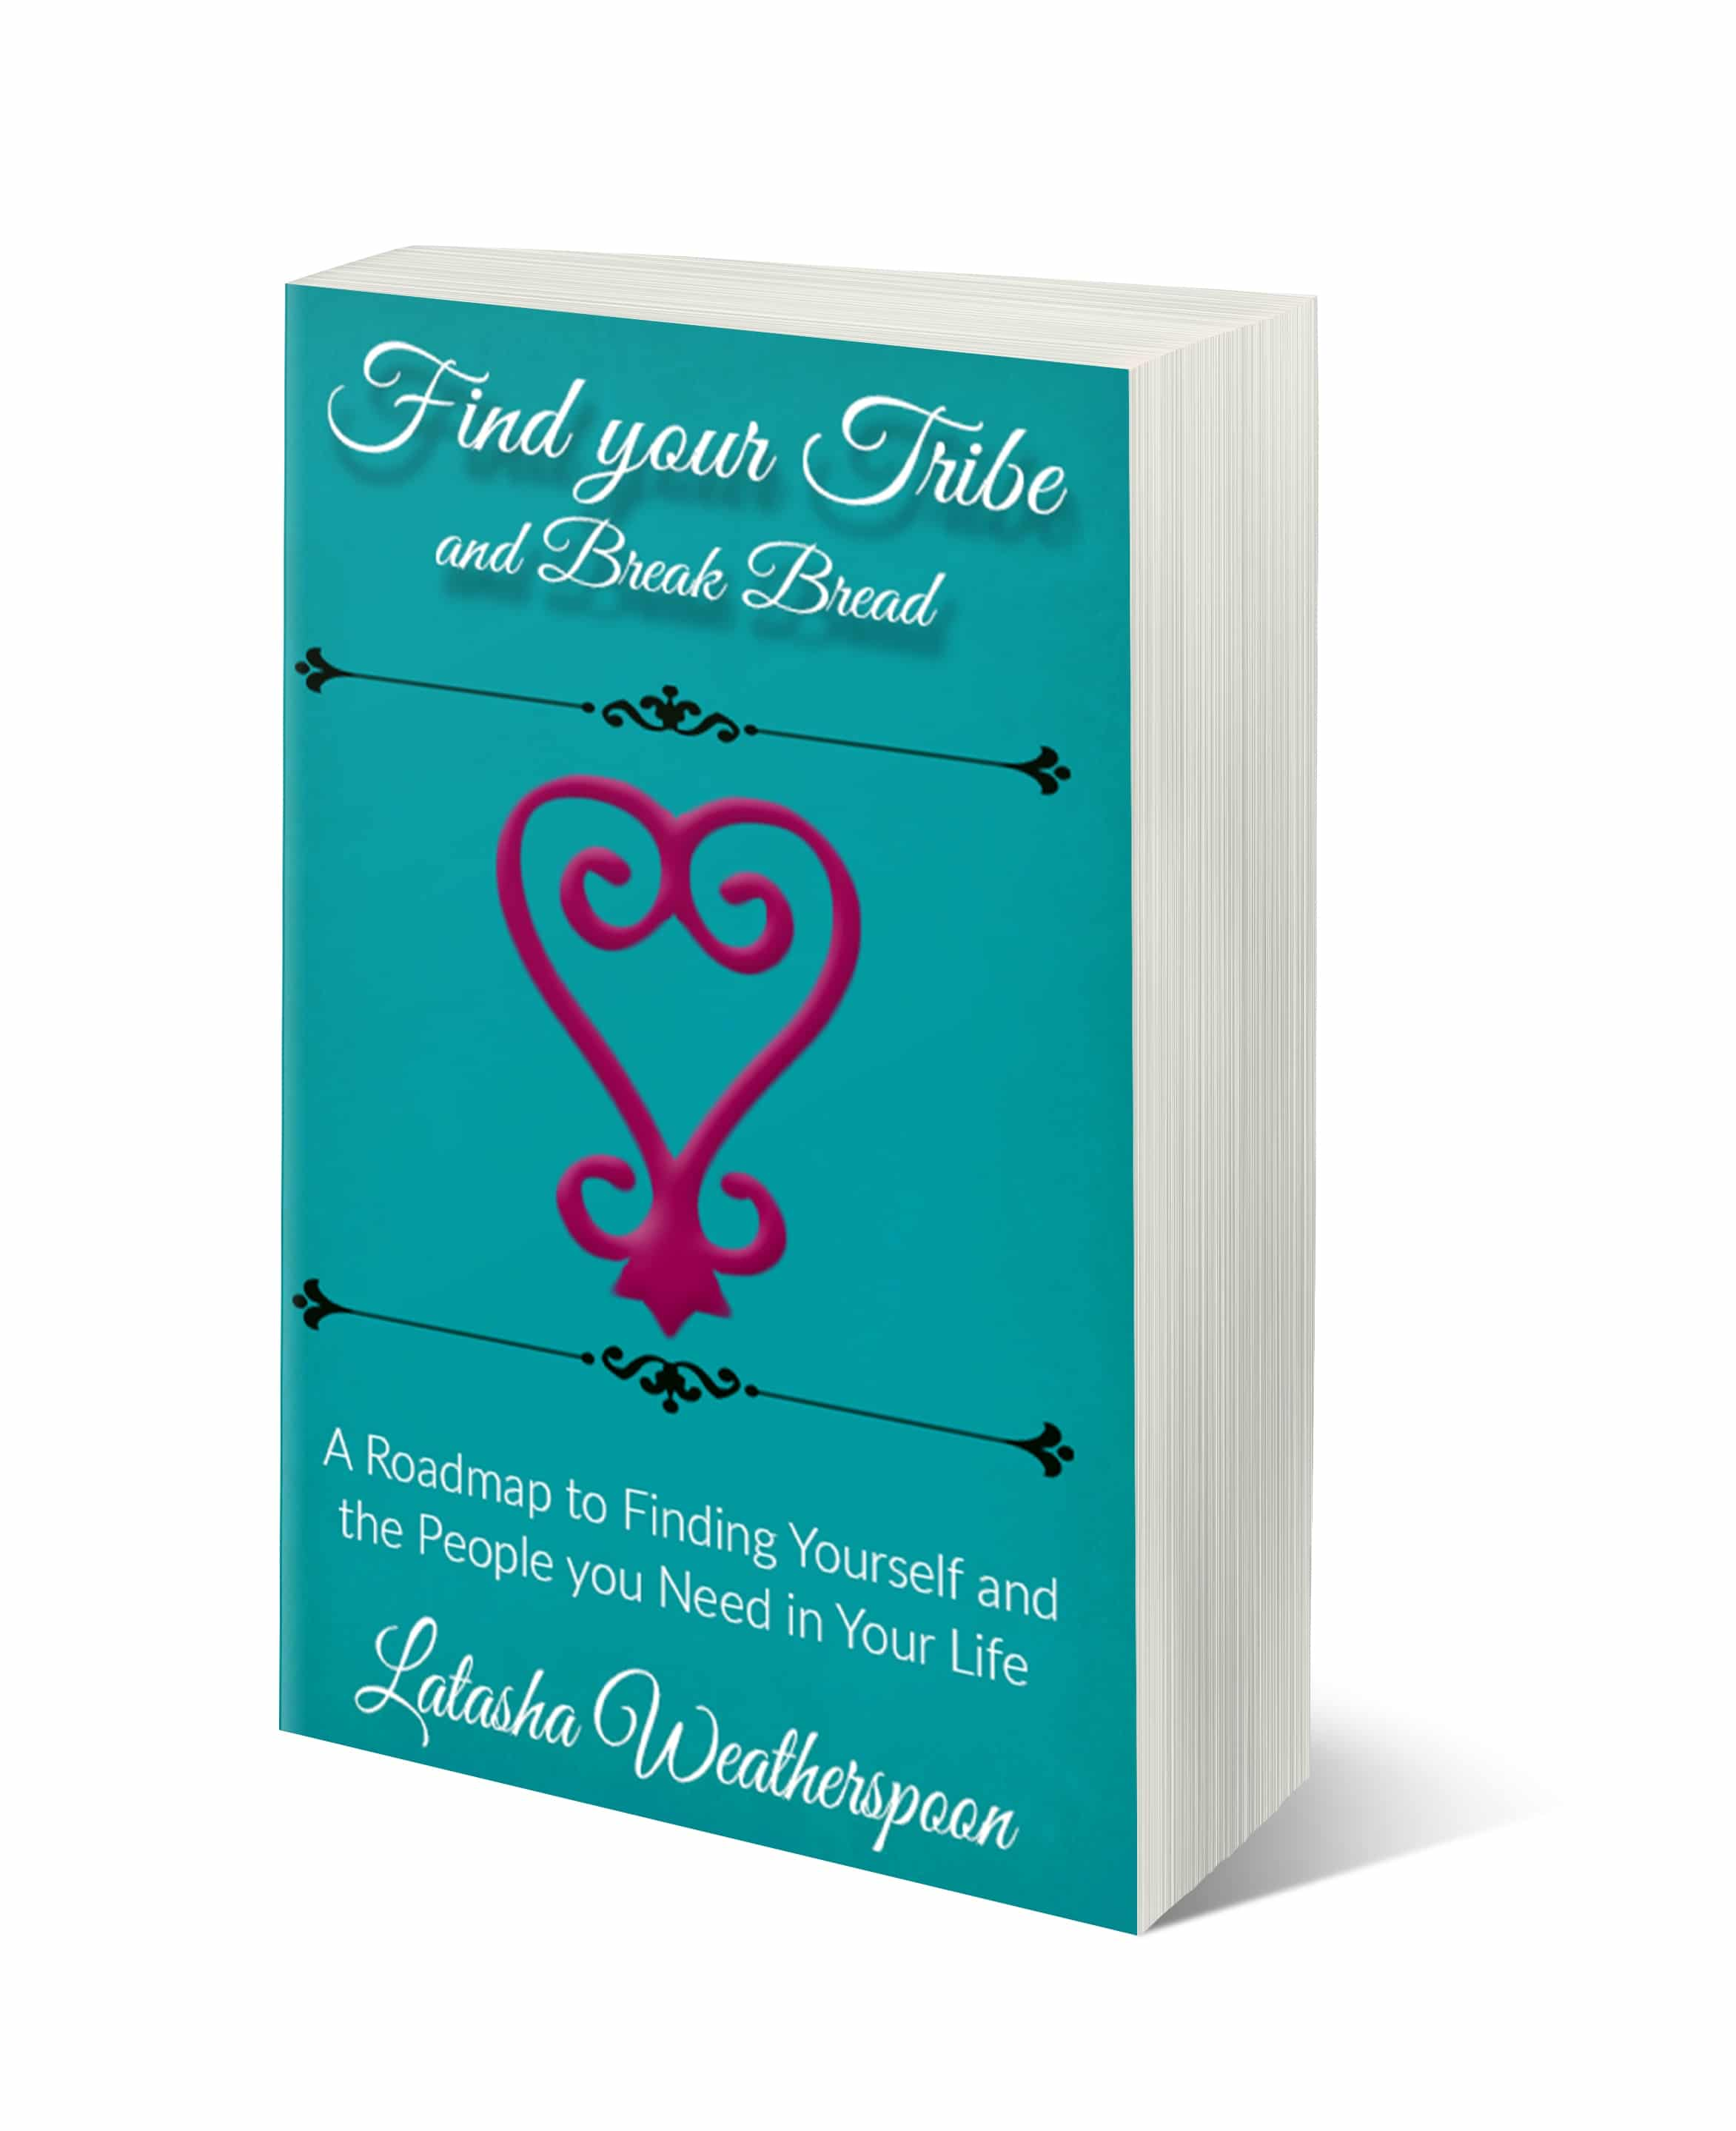 Find Your Tribe and Break Bread....A Roadmap to Finding Yourself and the People you Need in Your Life - By Latasha Weatherspoon